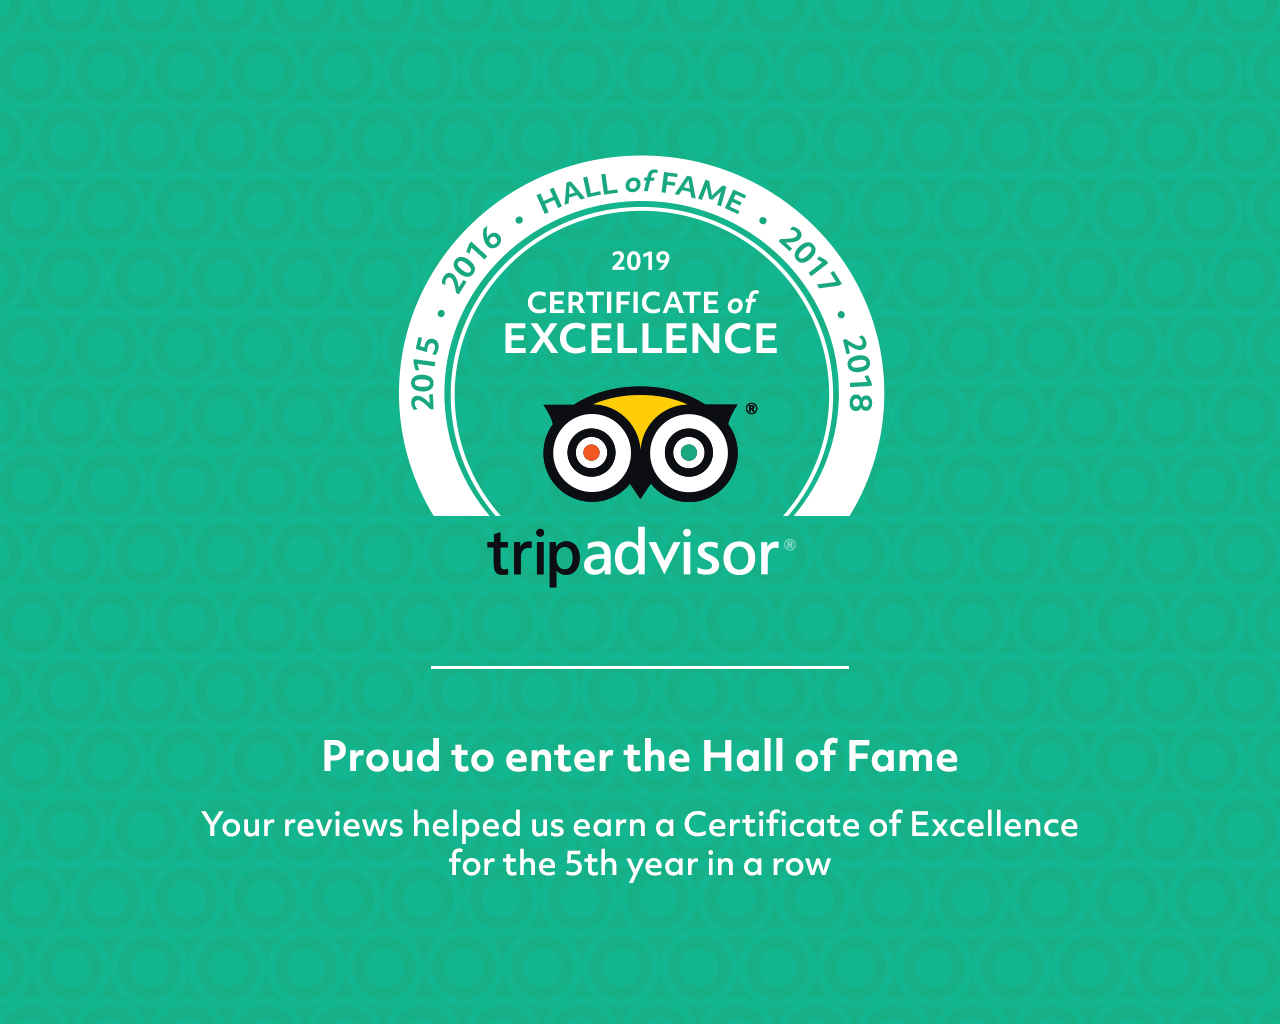 Colombo Court Hotel & Spa Inducted into the TripAdvisor Hall of Fame